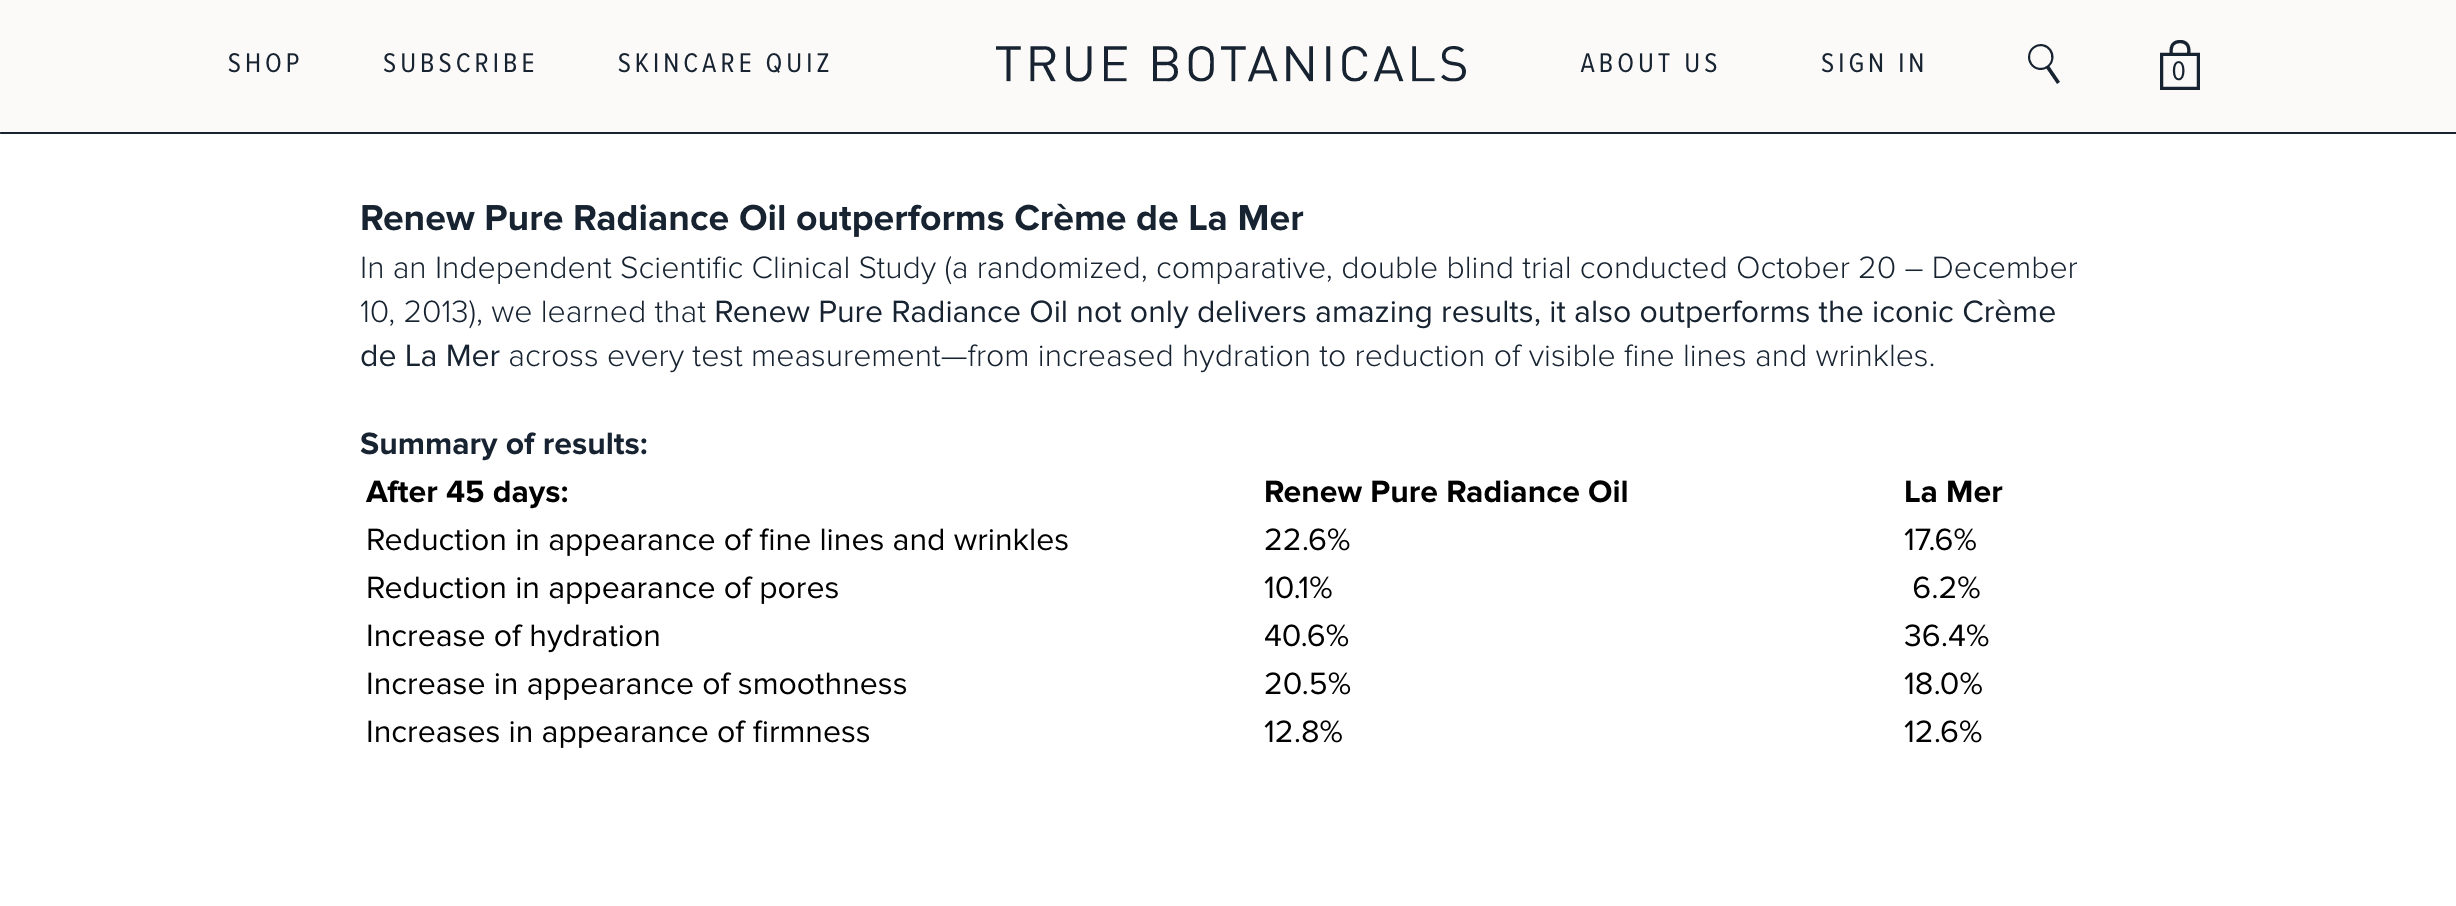 WM123 true botanicals clinical trials